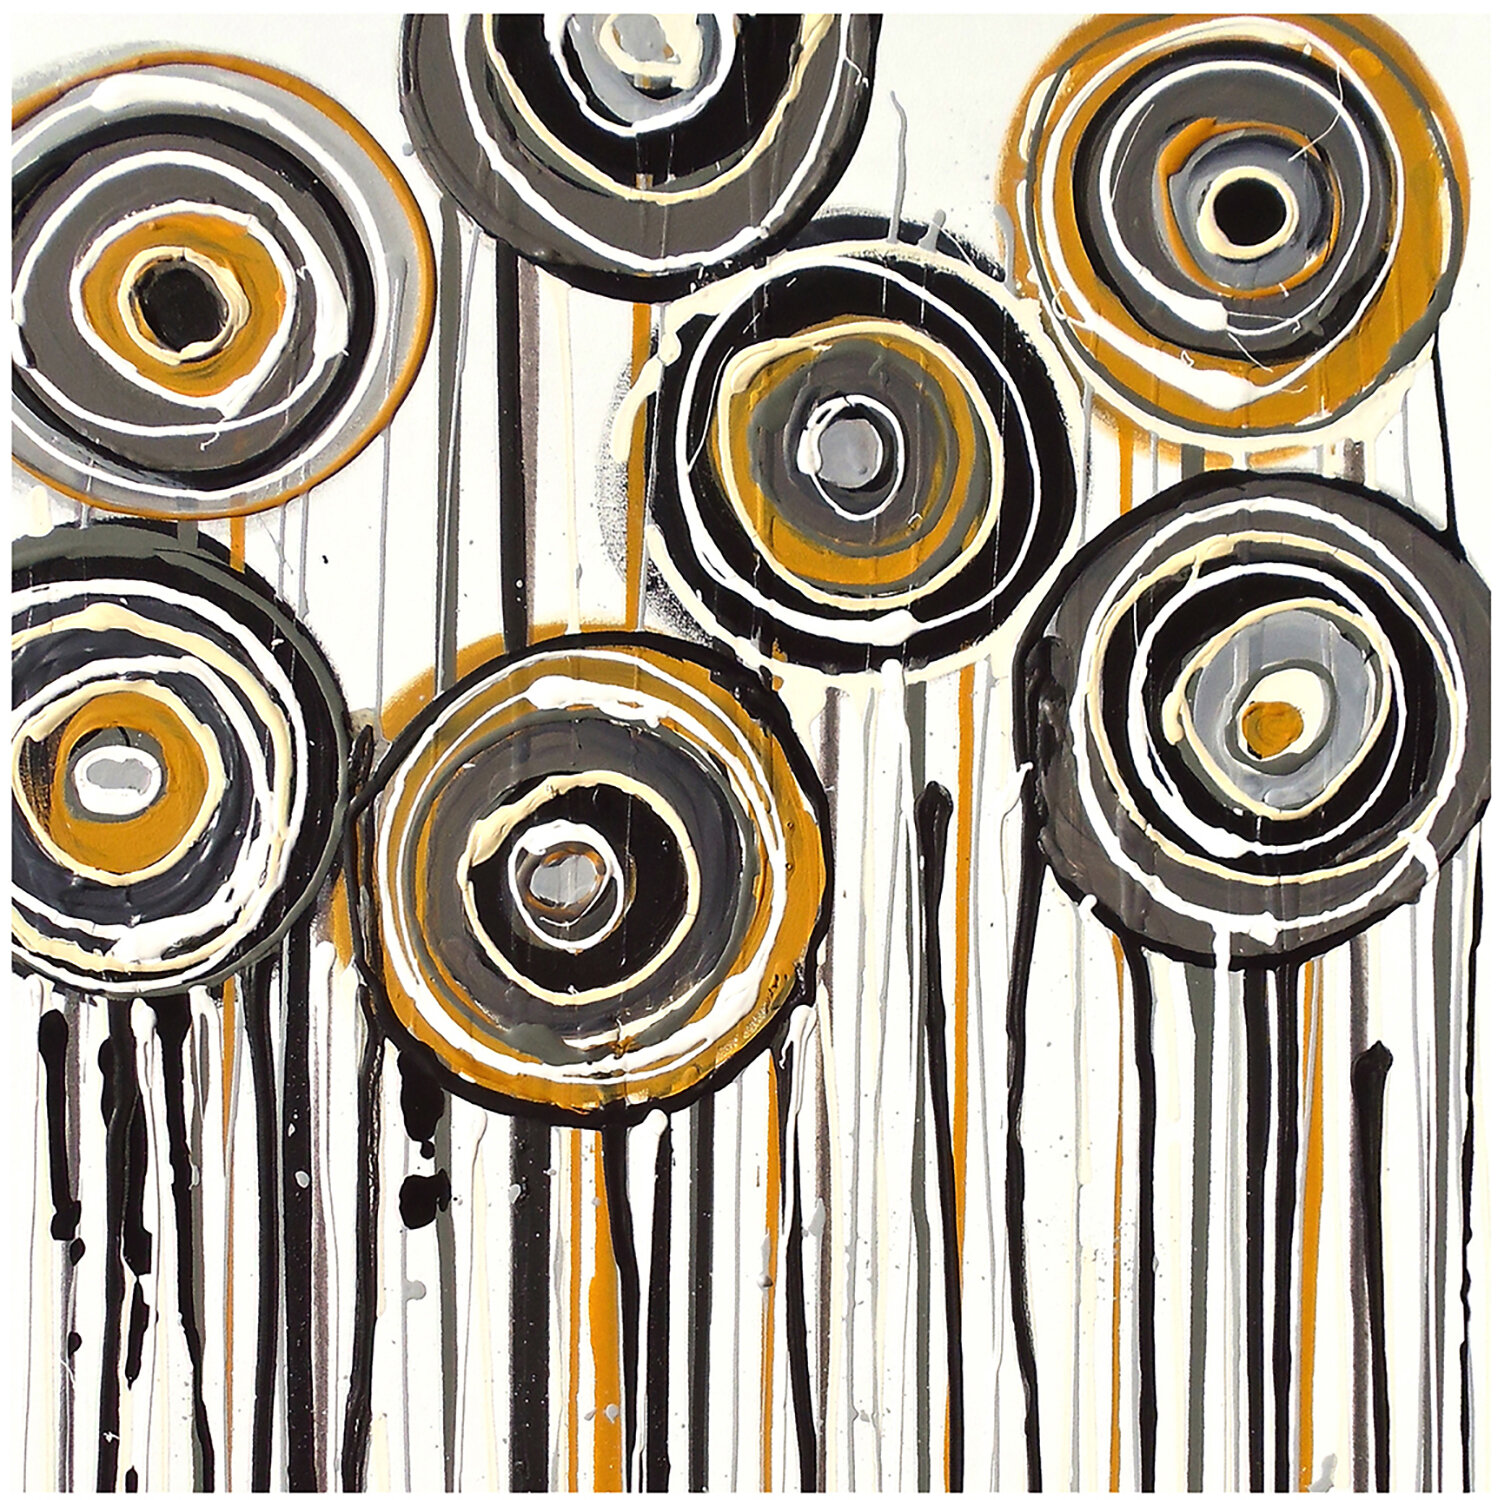 Ptm images abstract lollipop painting print on wrapped for Best brand of paint for kitchen cabinets with iron man wall art